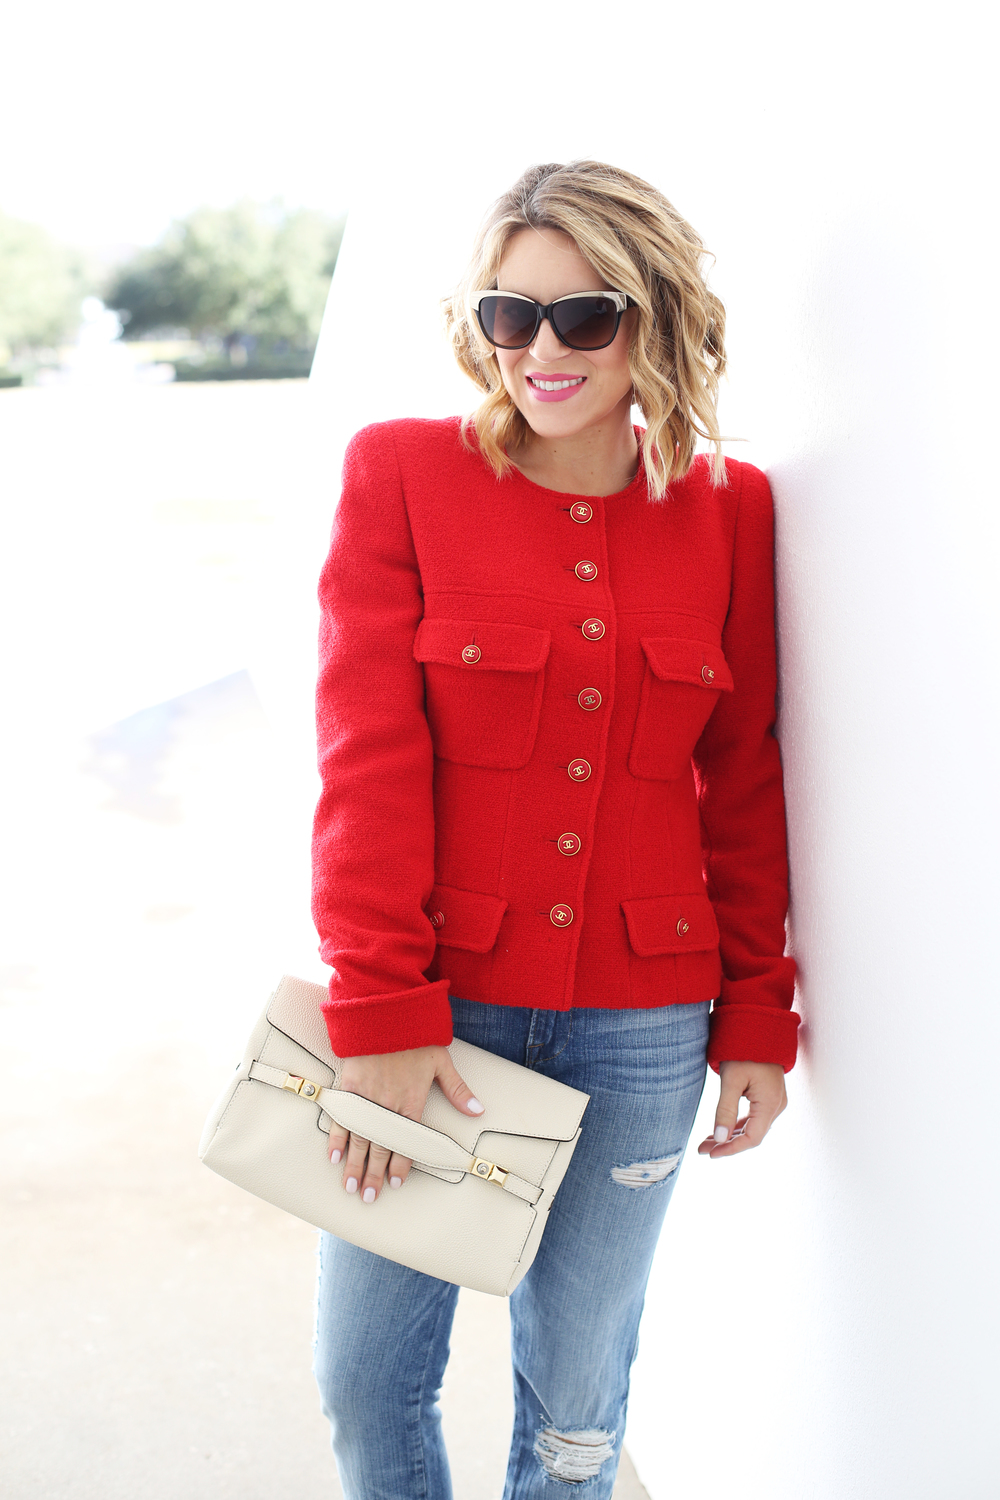 Chanel Red Blazer, Henri Bendel Bag, Kate Spade Floral Pumps and Frame Denim 5.JPG